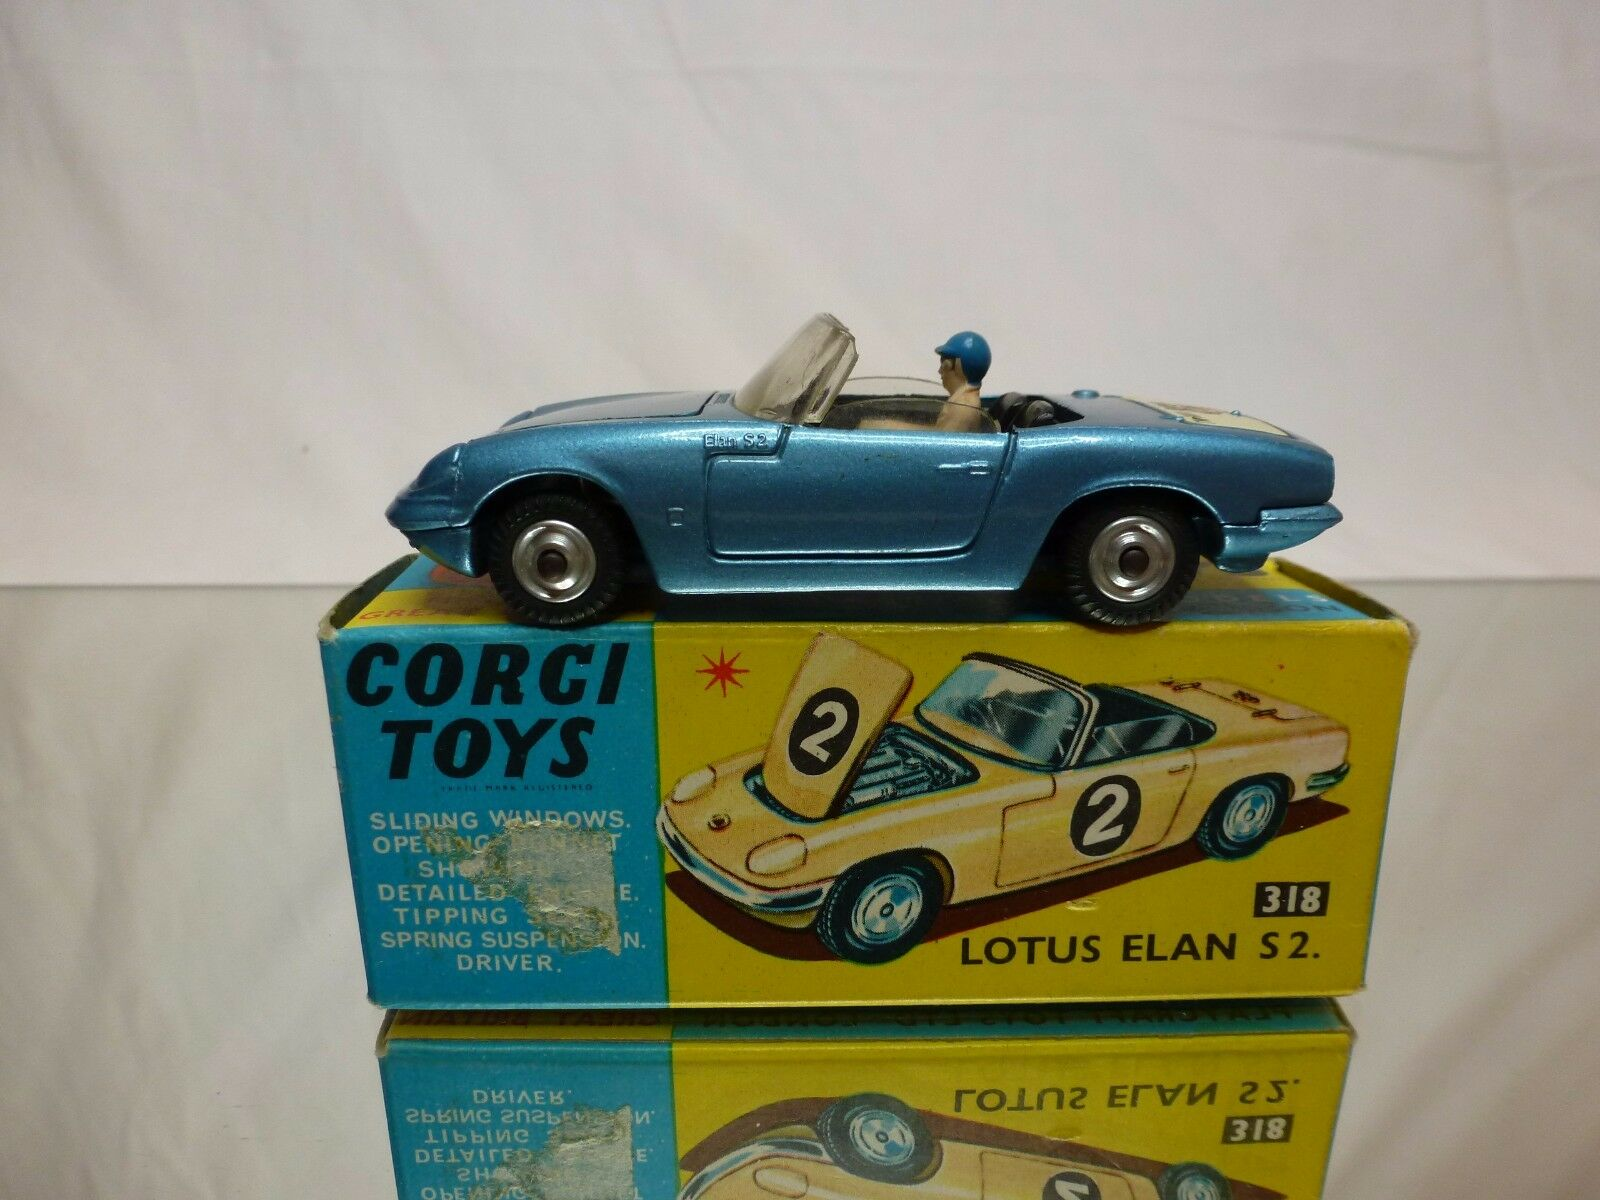 CORGI TOYS 318 LOTUS ELAN S2 - blu 1:43 - GOOD CONDITION IN BOX